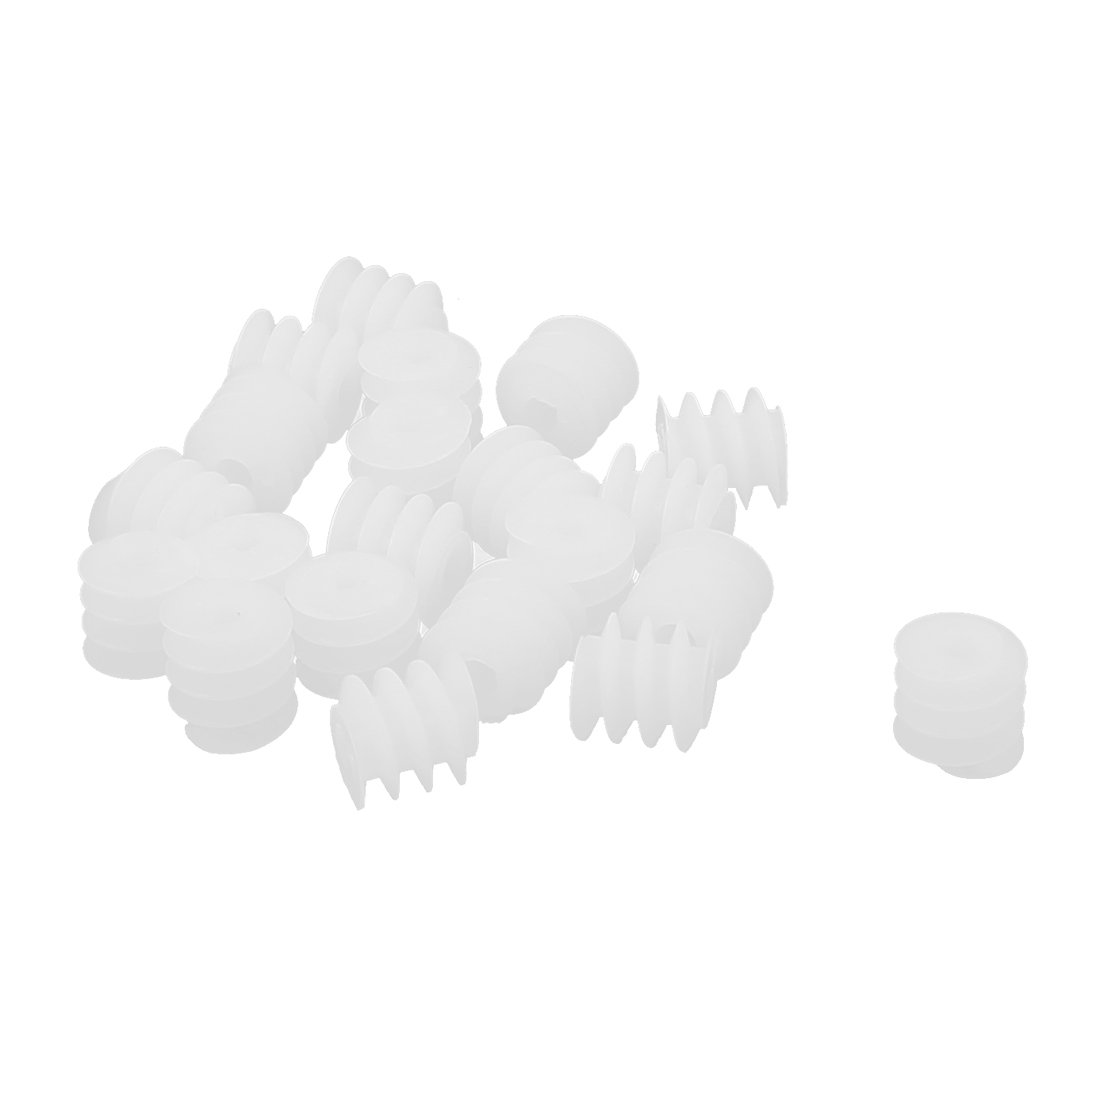 uxcell 20 Pcs 2mm Hole 6mmx6mm Worm Gear for DIY Toy Motor Reduction Box